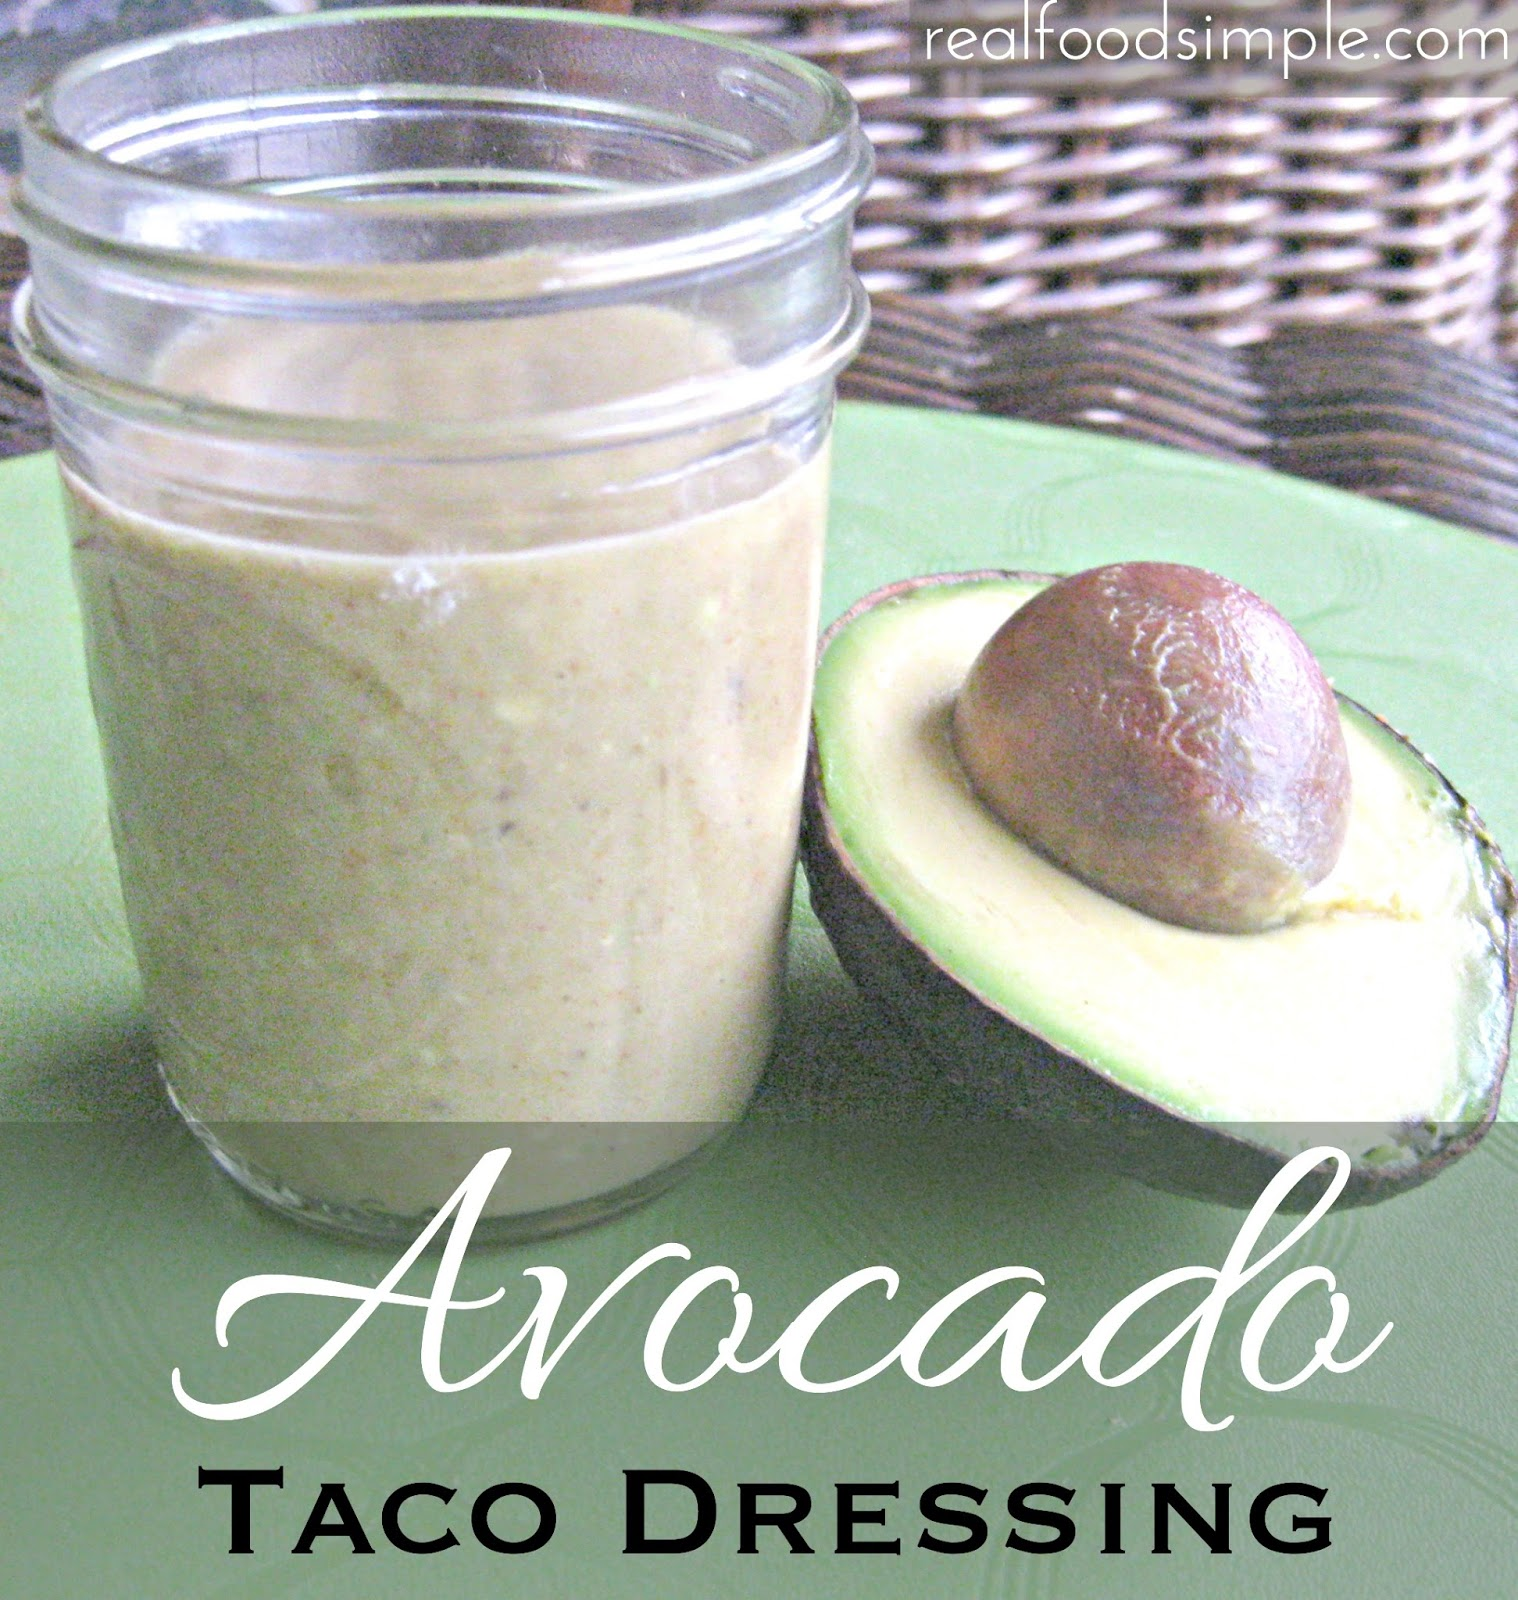 avocado taco dressing | realfoodsimple.com